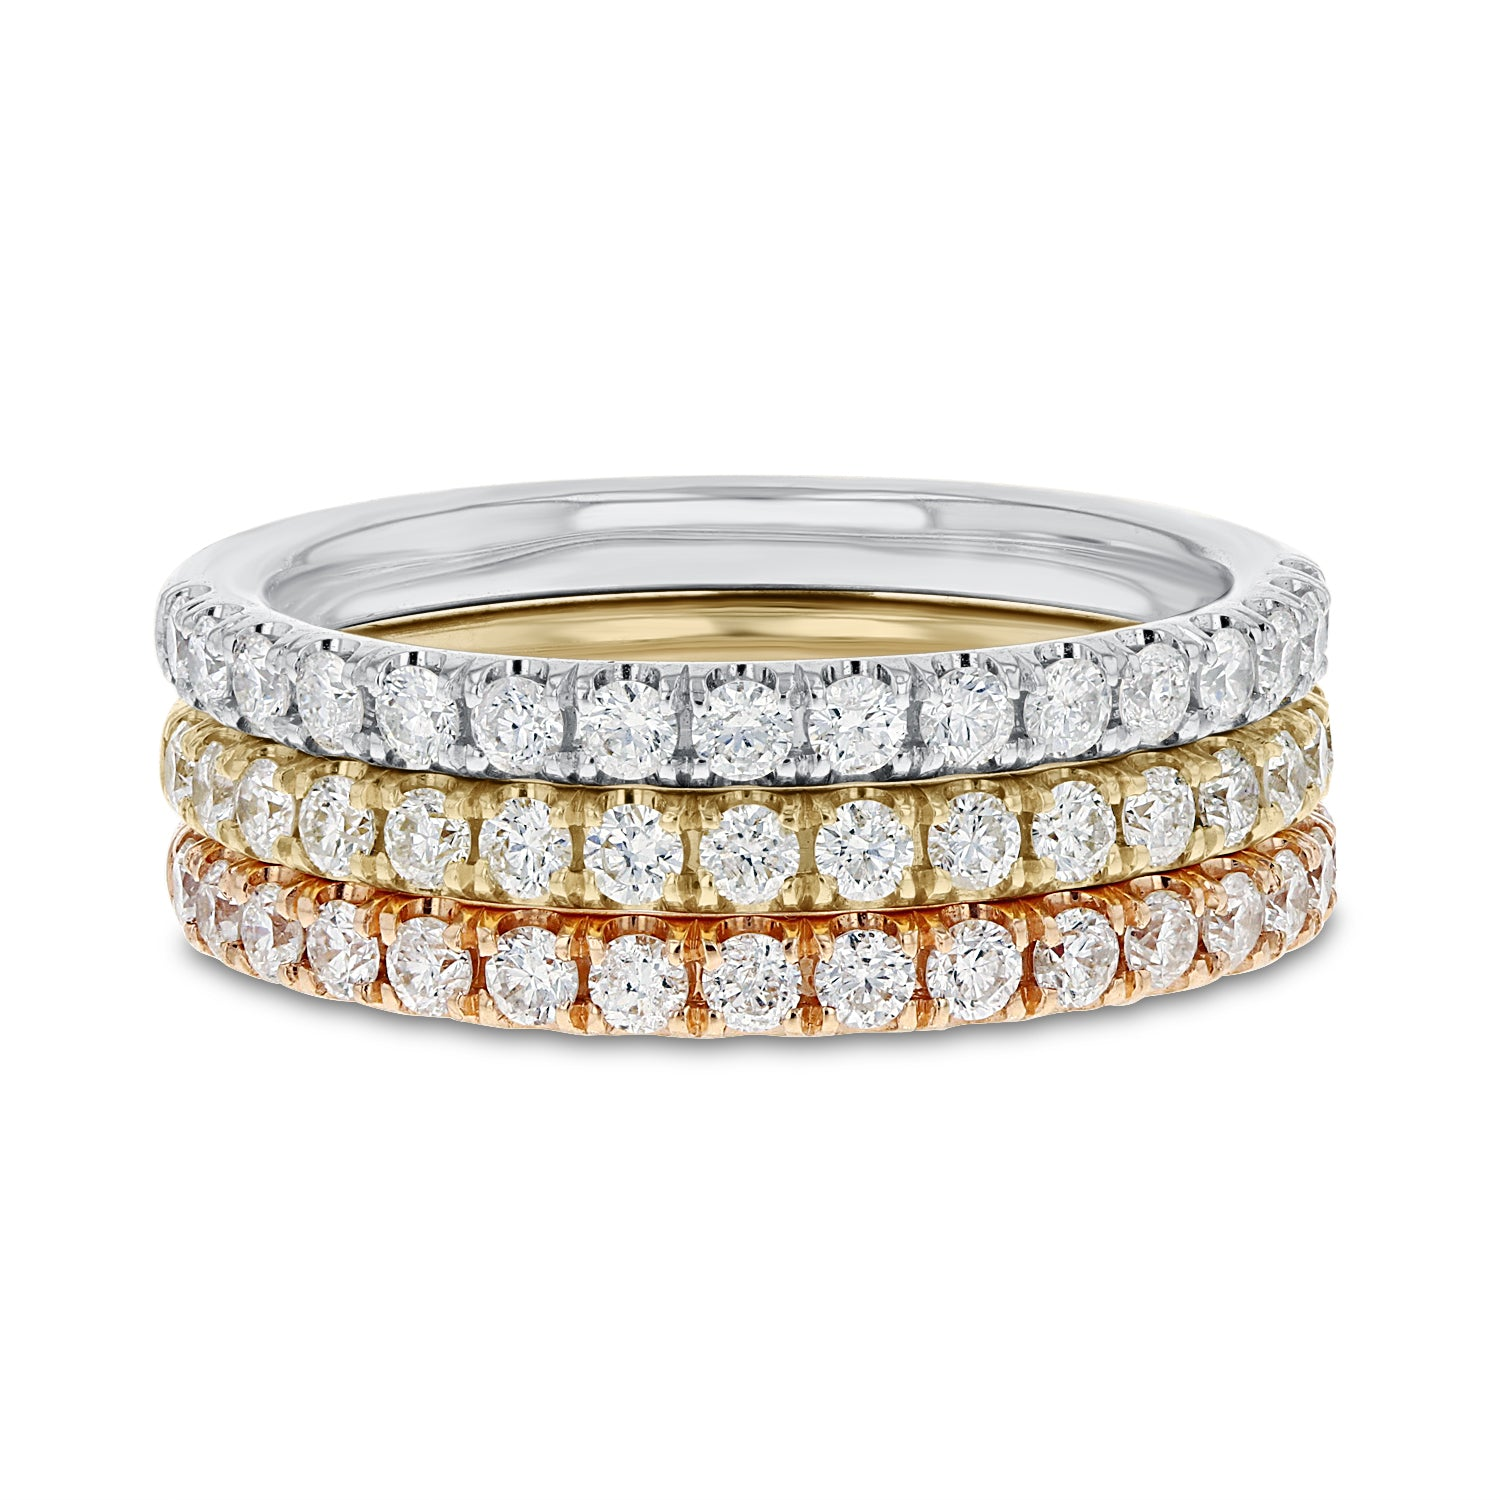 18K TRI COLOR GOLD Diamond Wedding Band, 1.08 Carats